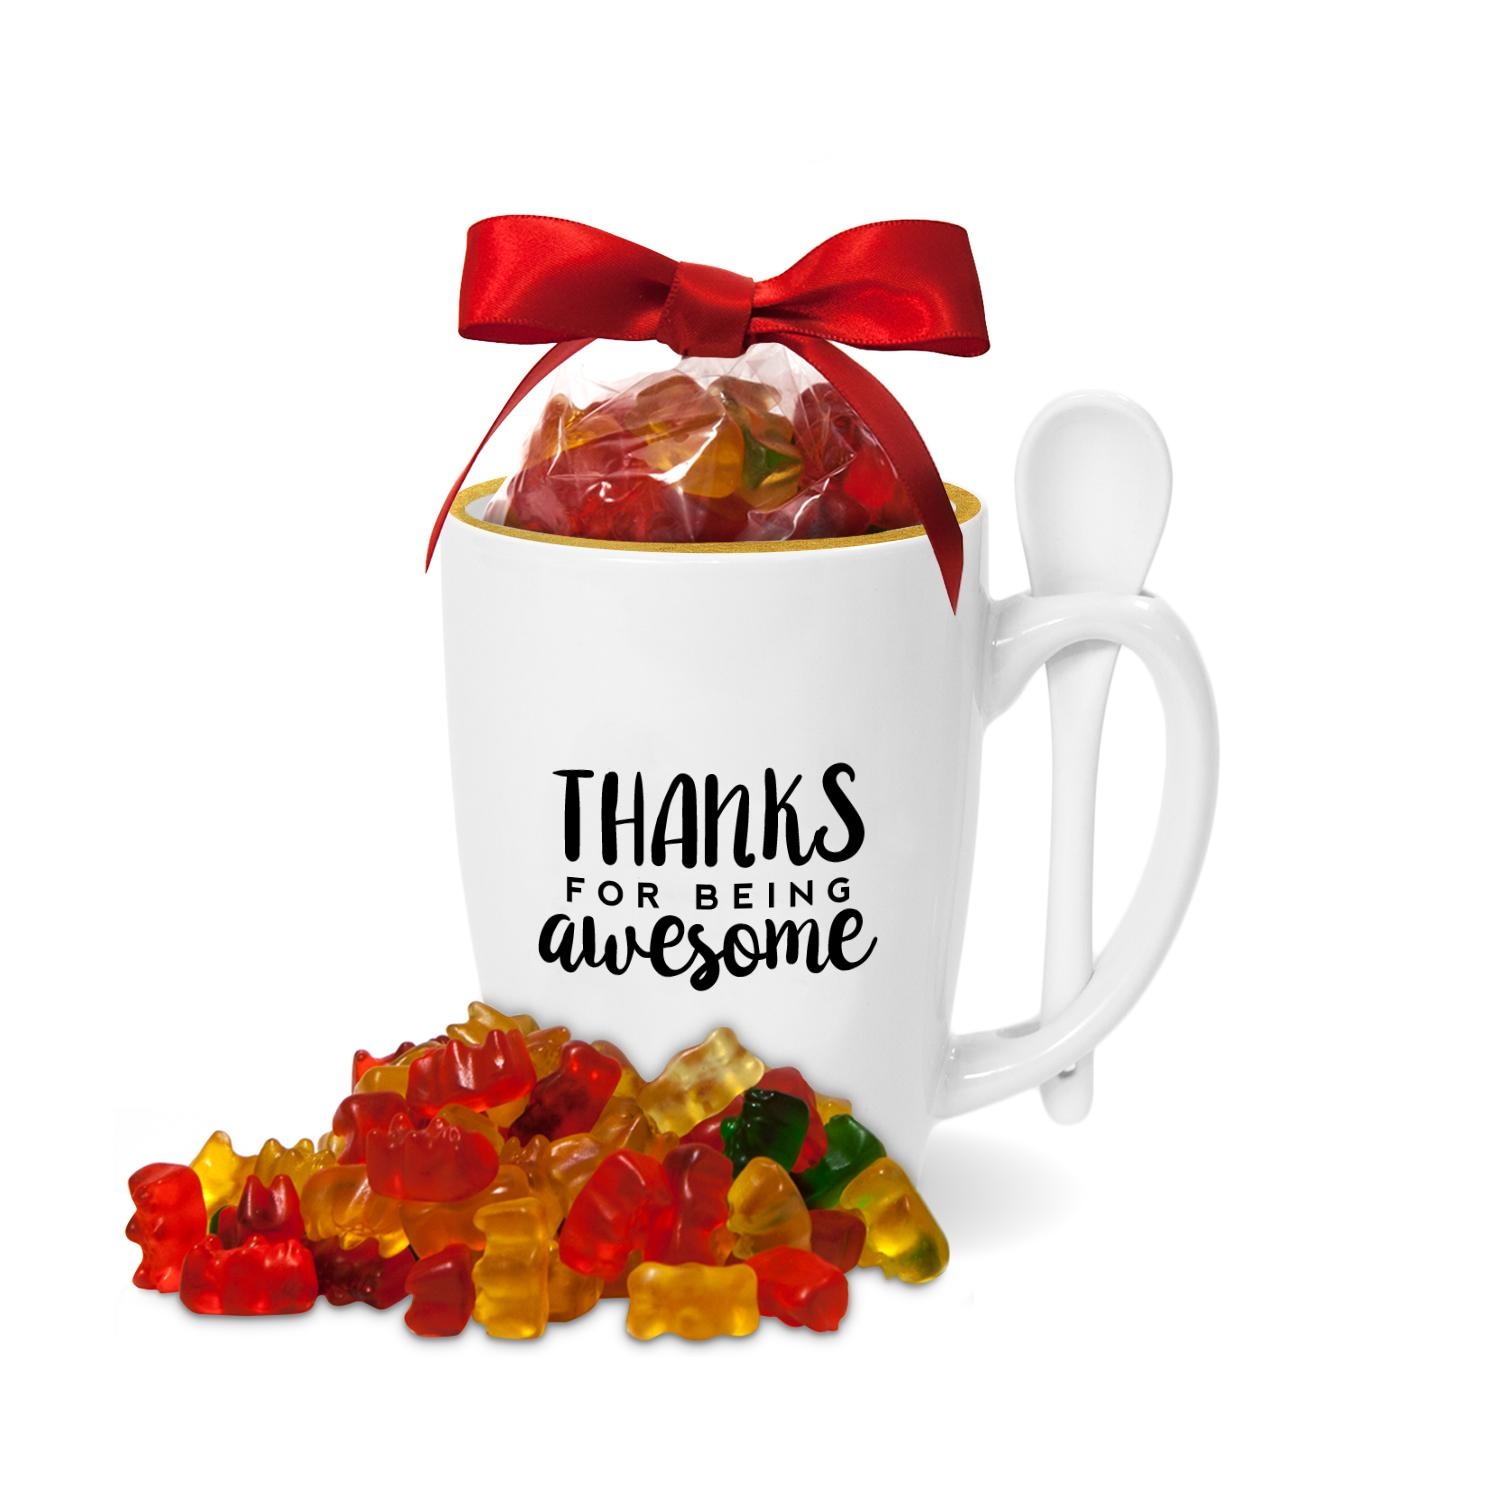 Employee Candy Gifts - Employee Gifts Food & Candy